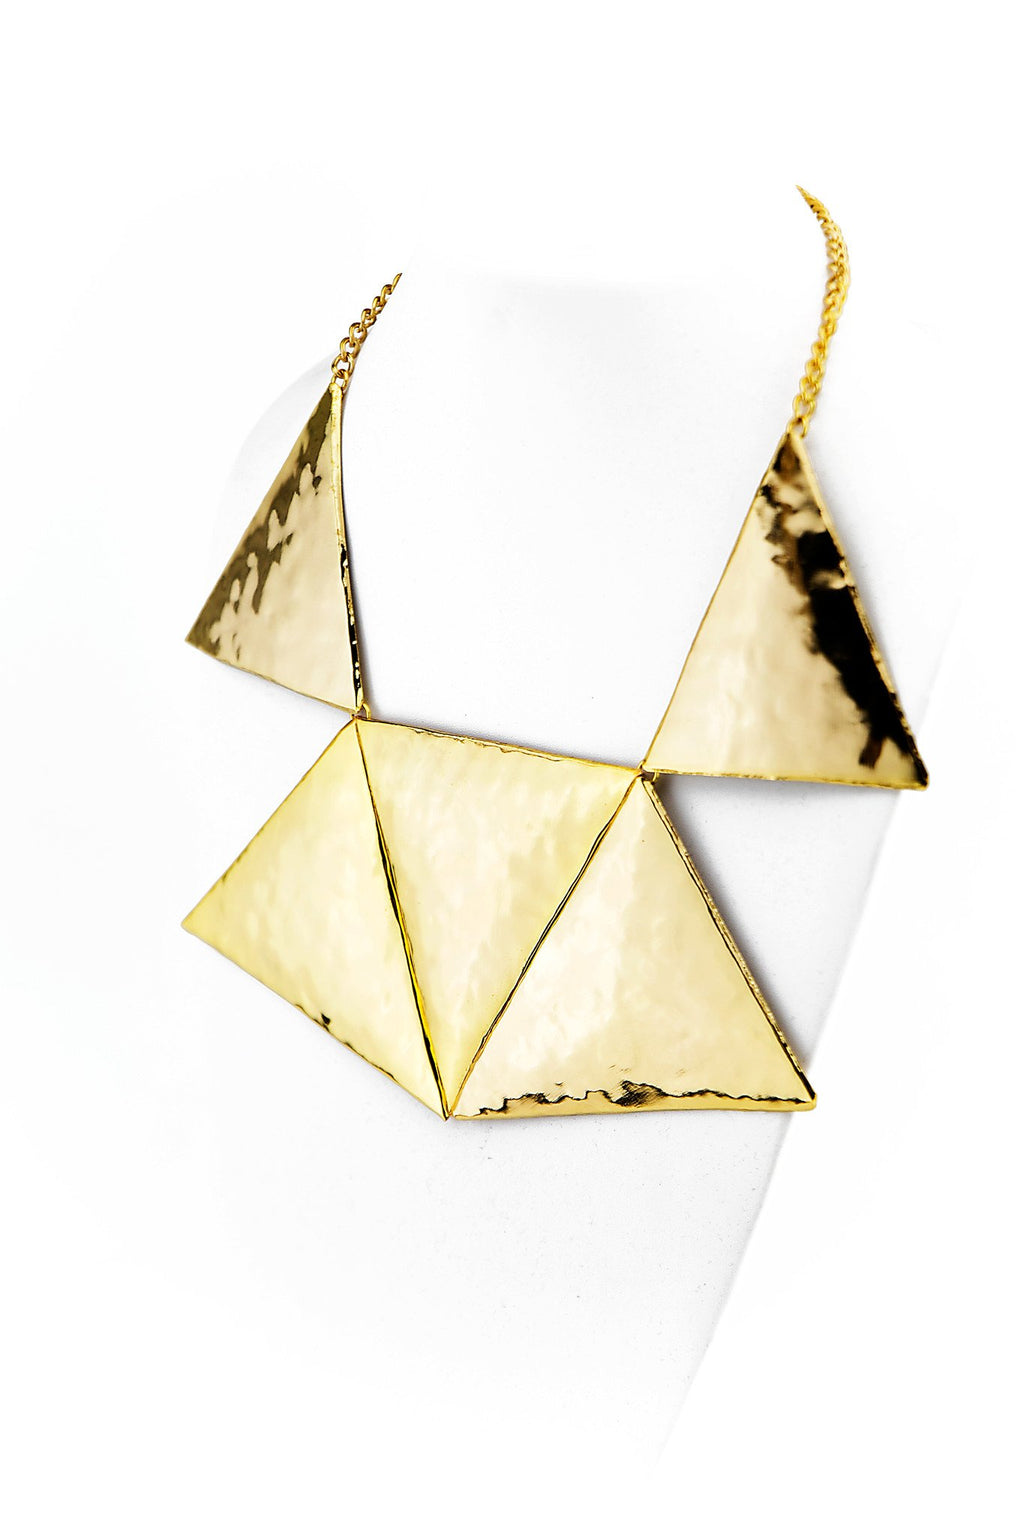 MELTED GOLD TRIANGLE NECKLACE - Haute & Rebellious